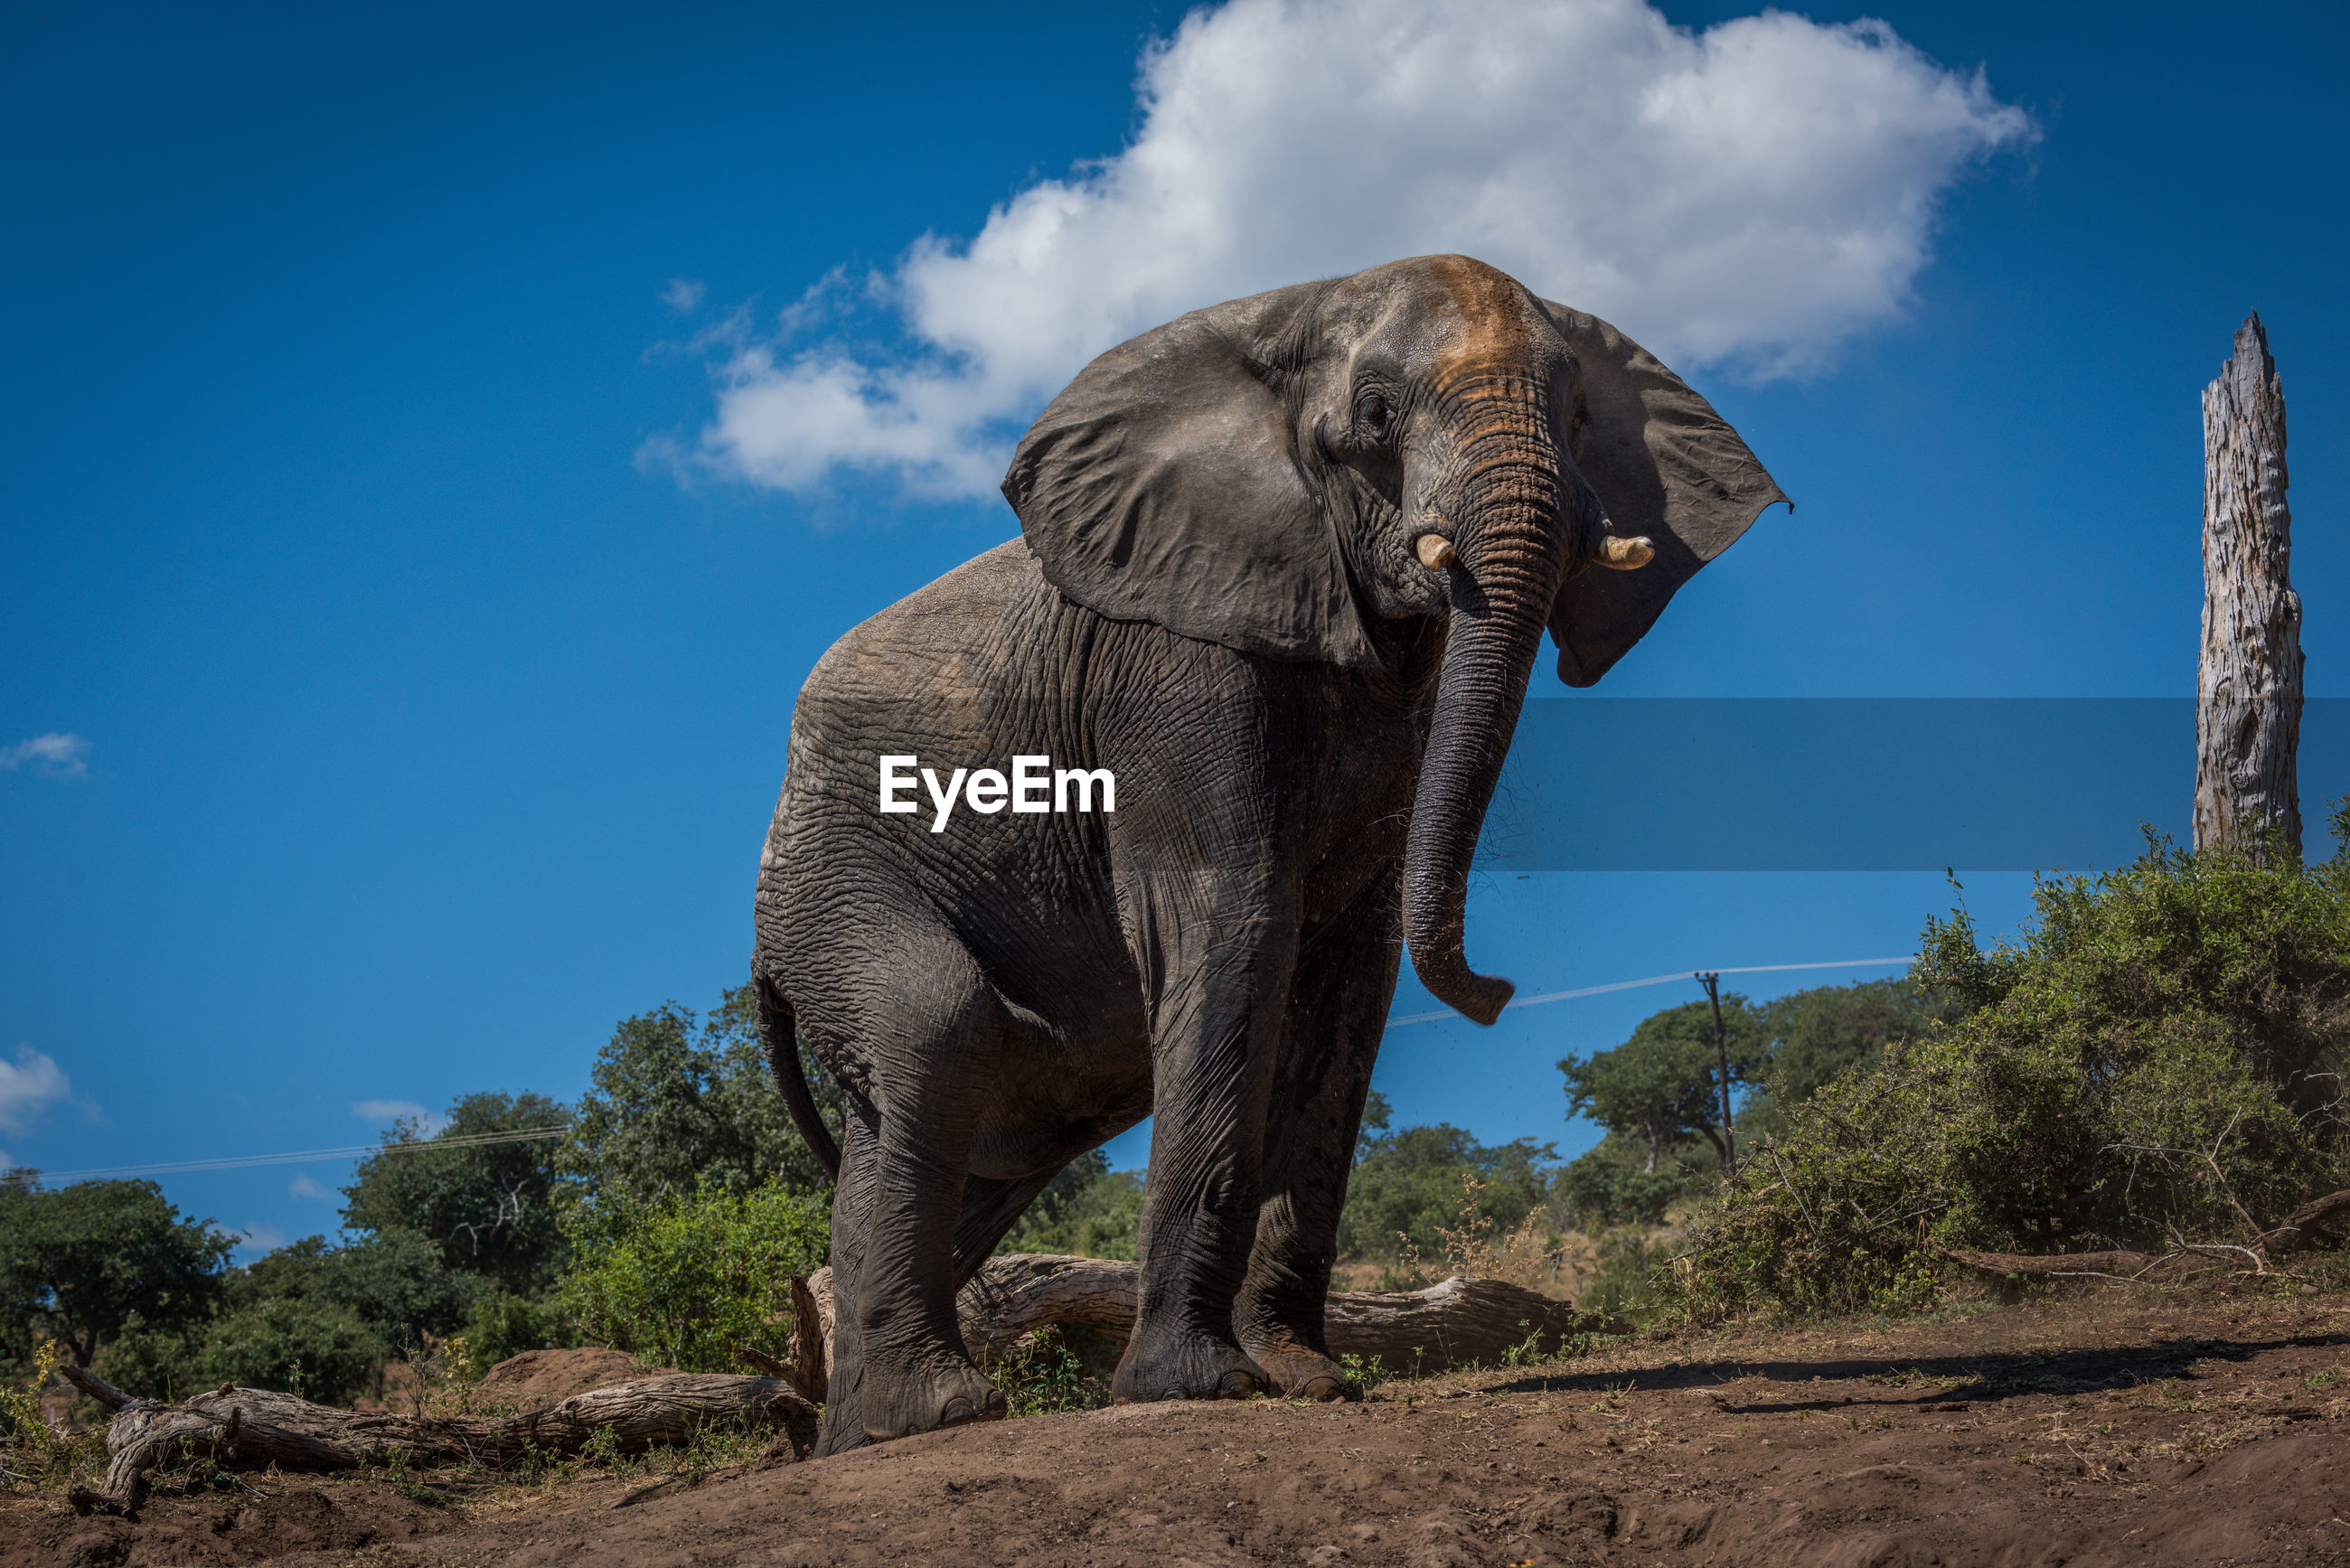 Low angle view of elephant on field against blue sky during sunny day